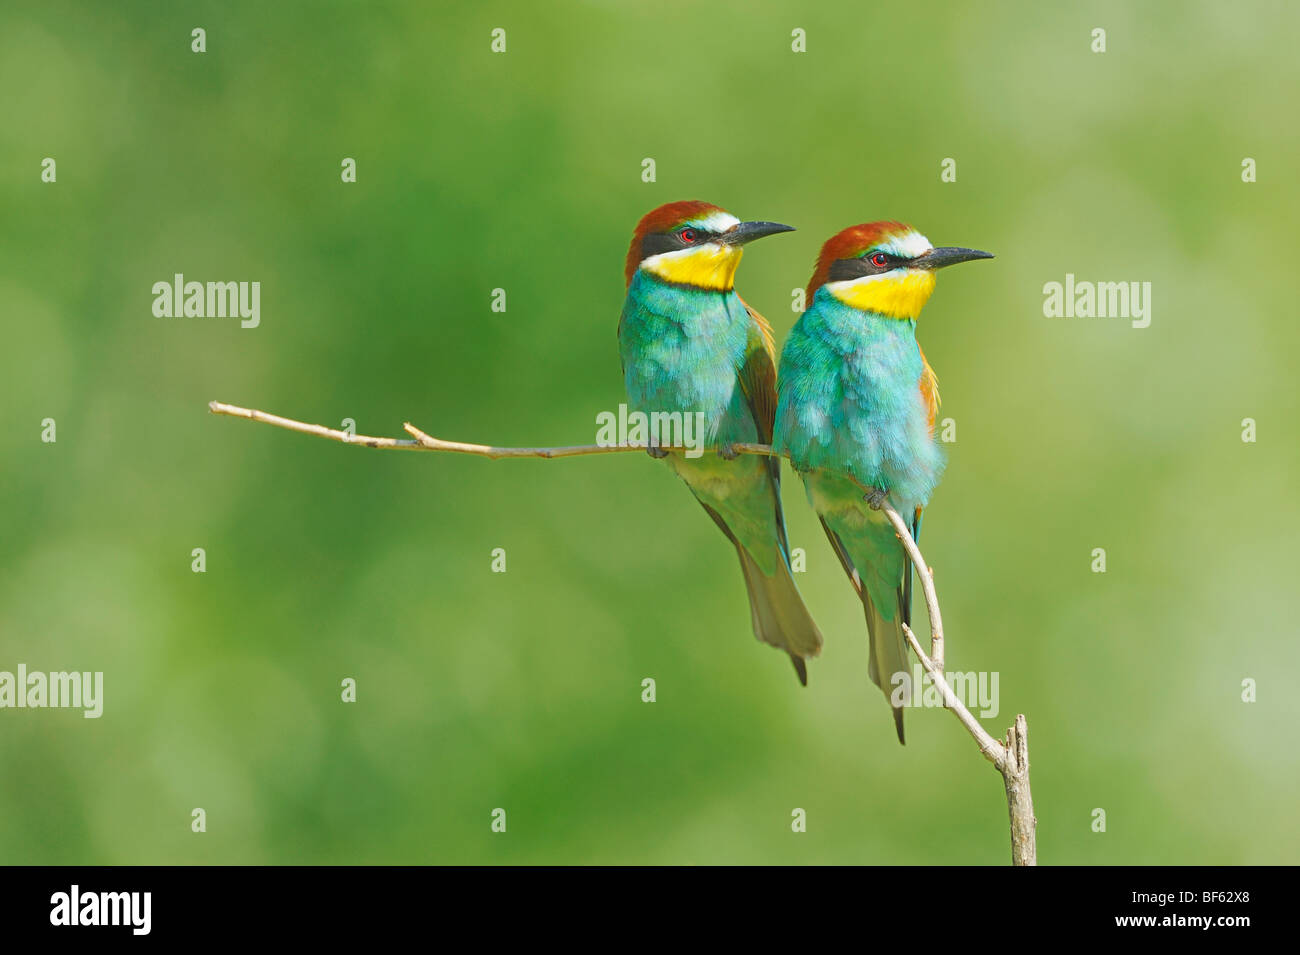 European Bee-eater (Merops apiaster),adults perched, Hungary, Europe - Stock Image